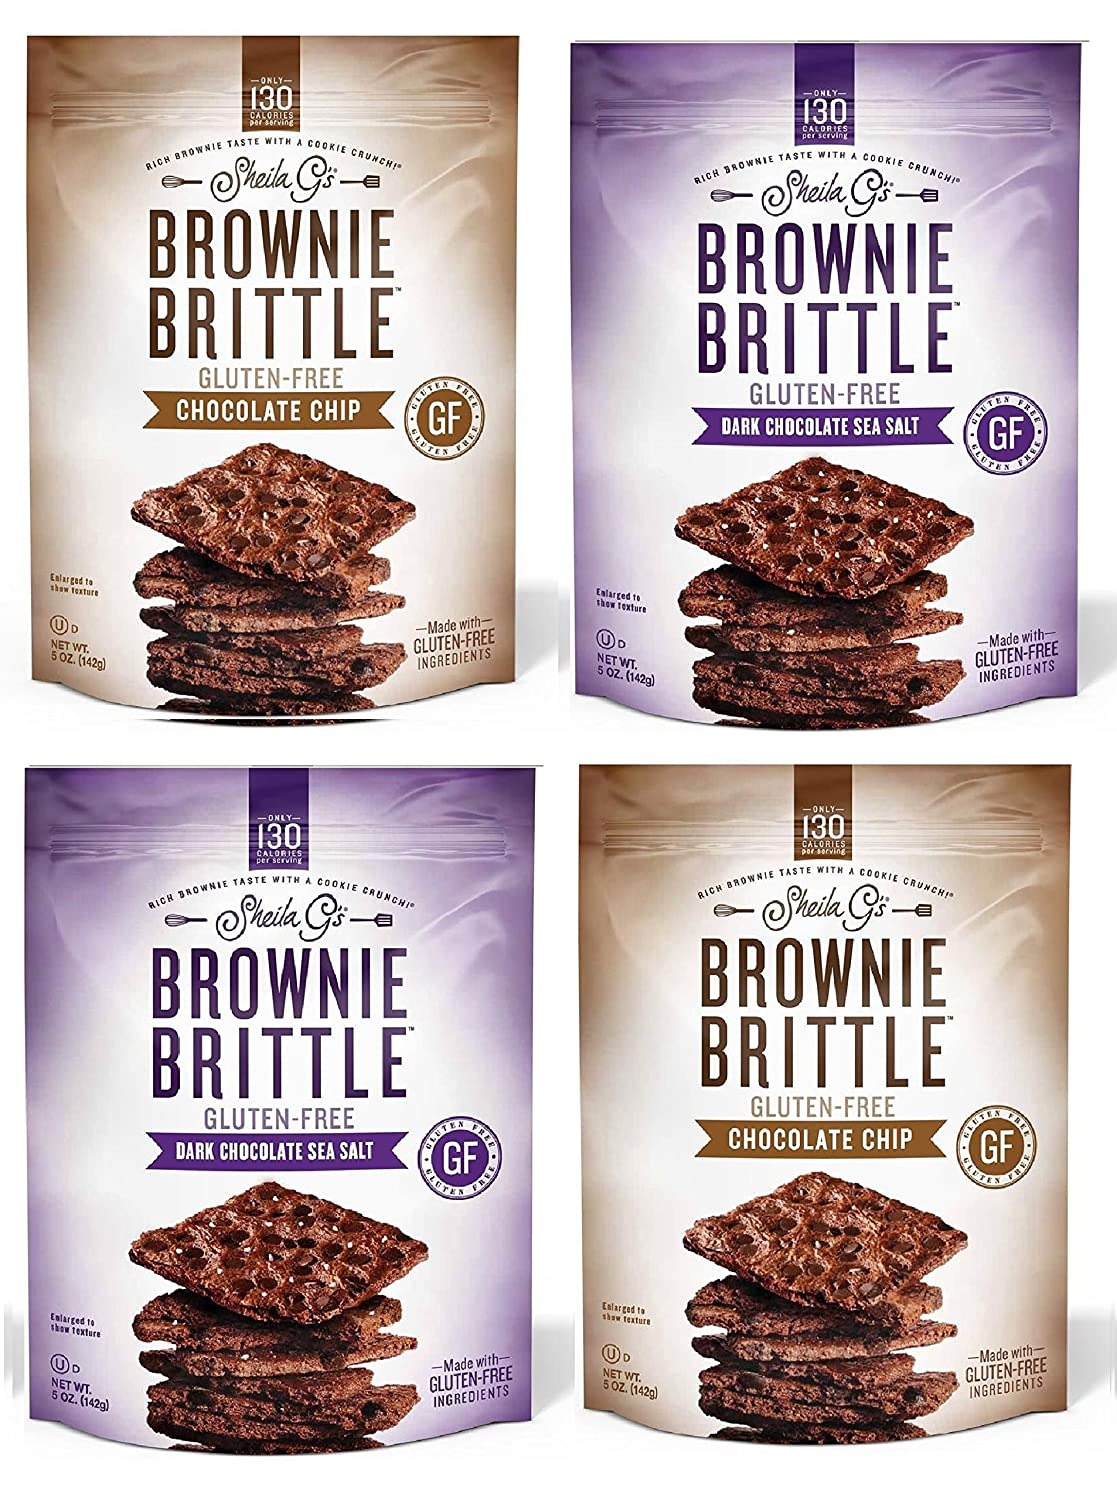 Brownie Brittle, Gluten-Free Variety Pack, 5 Oz bags (Pack of 4)